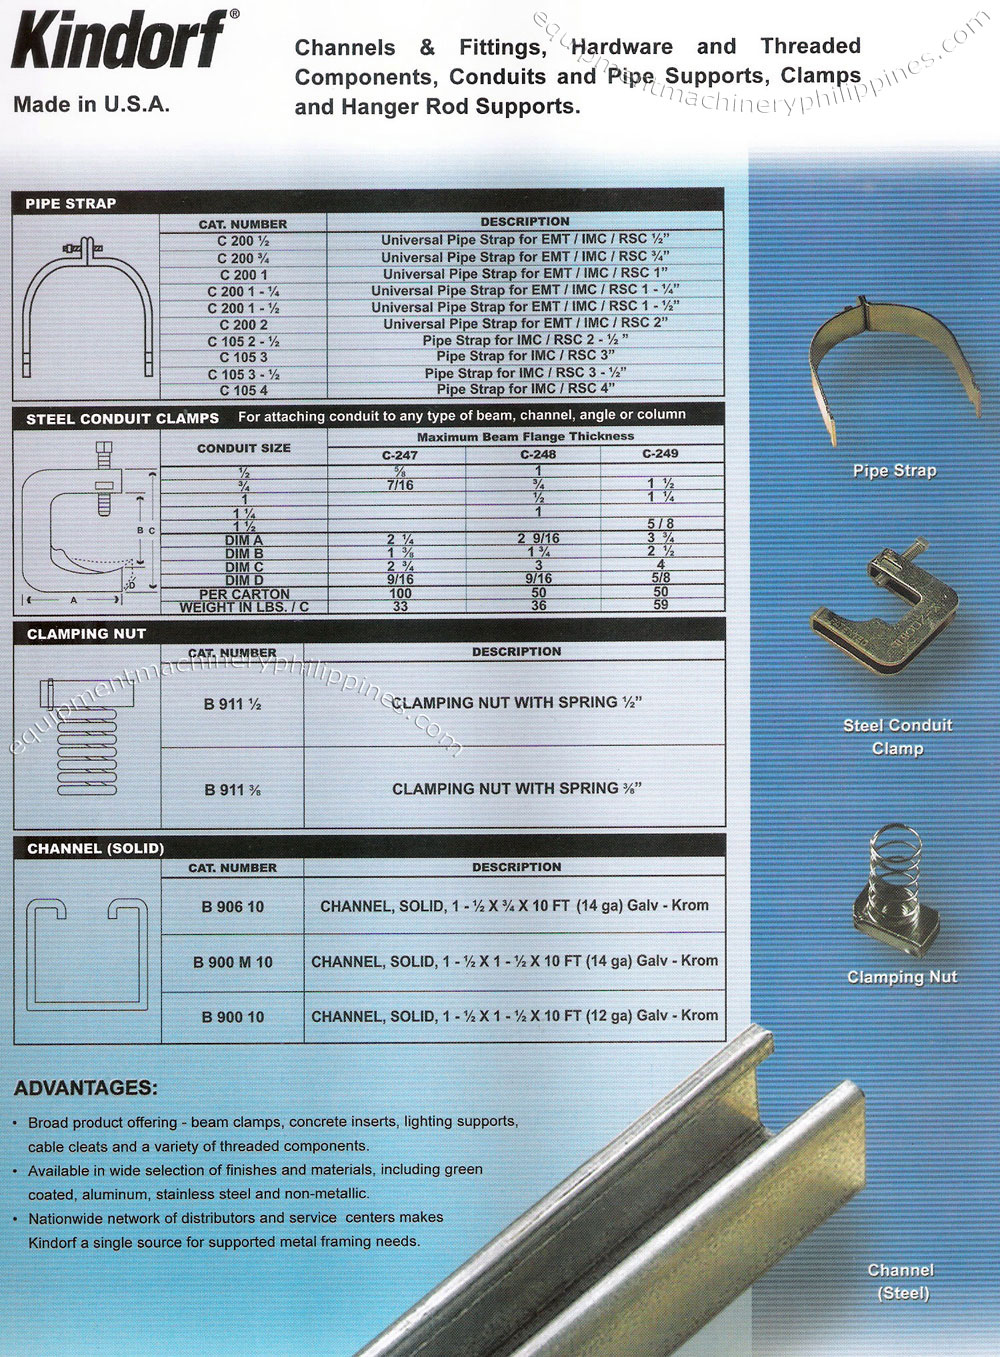 Kindorf Channels And Fittings Hardware And Threaded